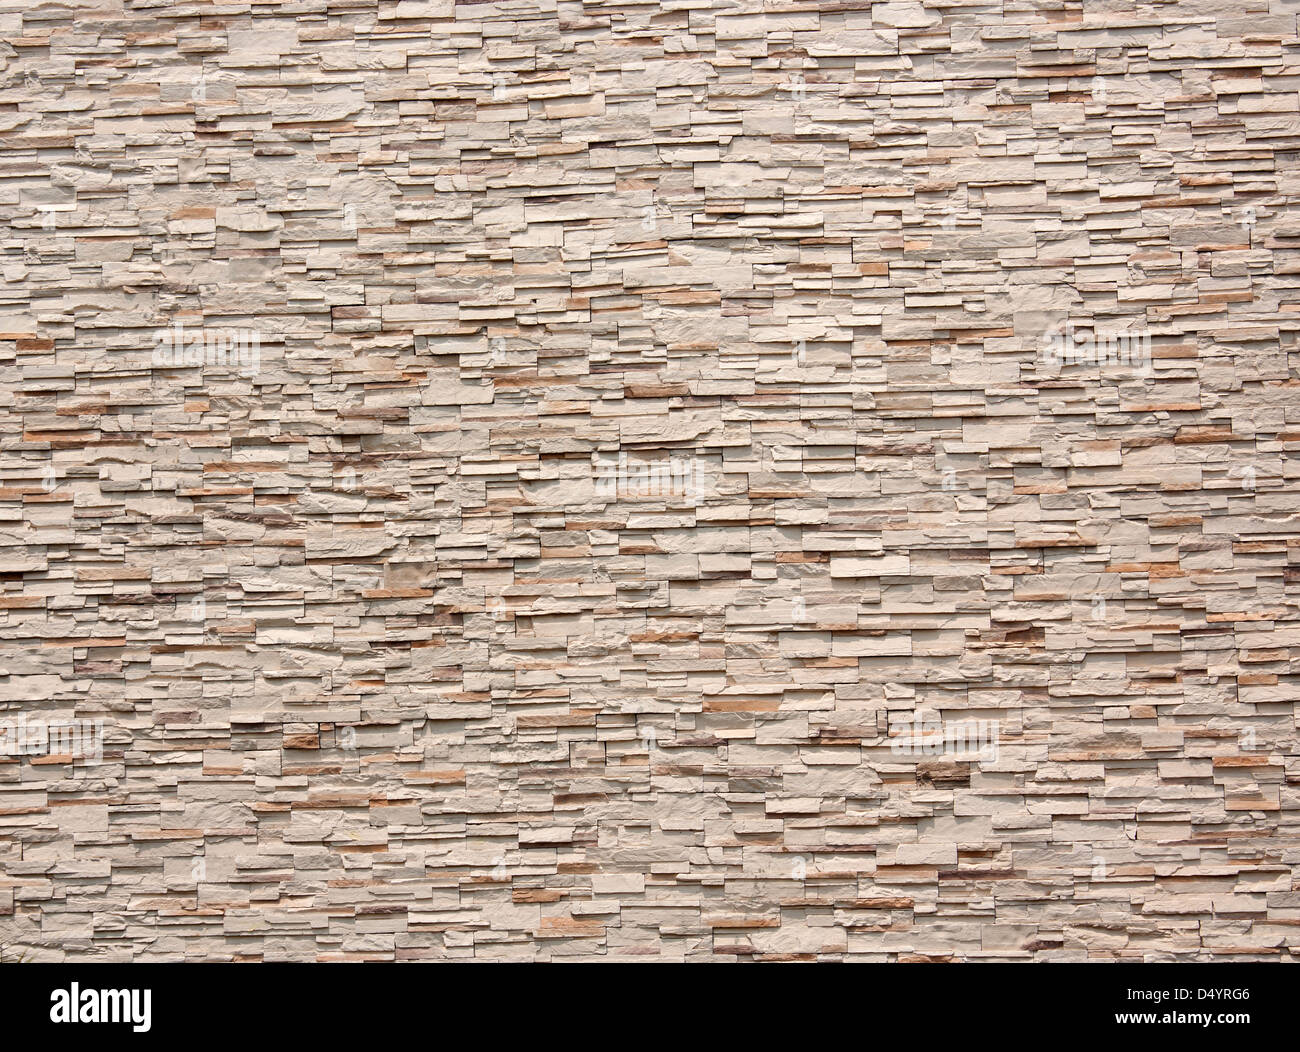 Pattern of Modern Brick Wall Surface stone wall tiles.